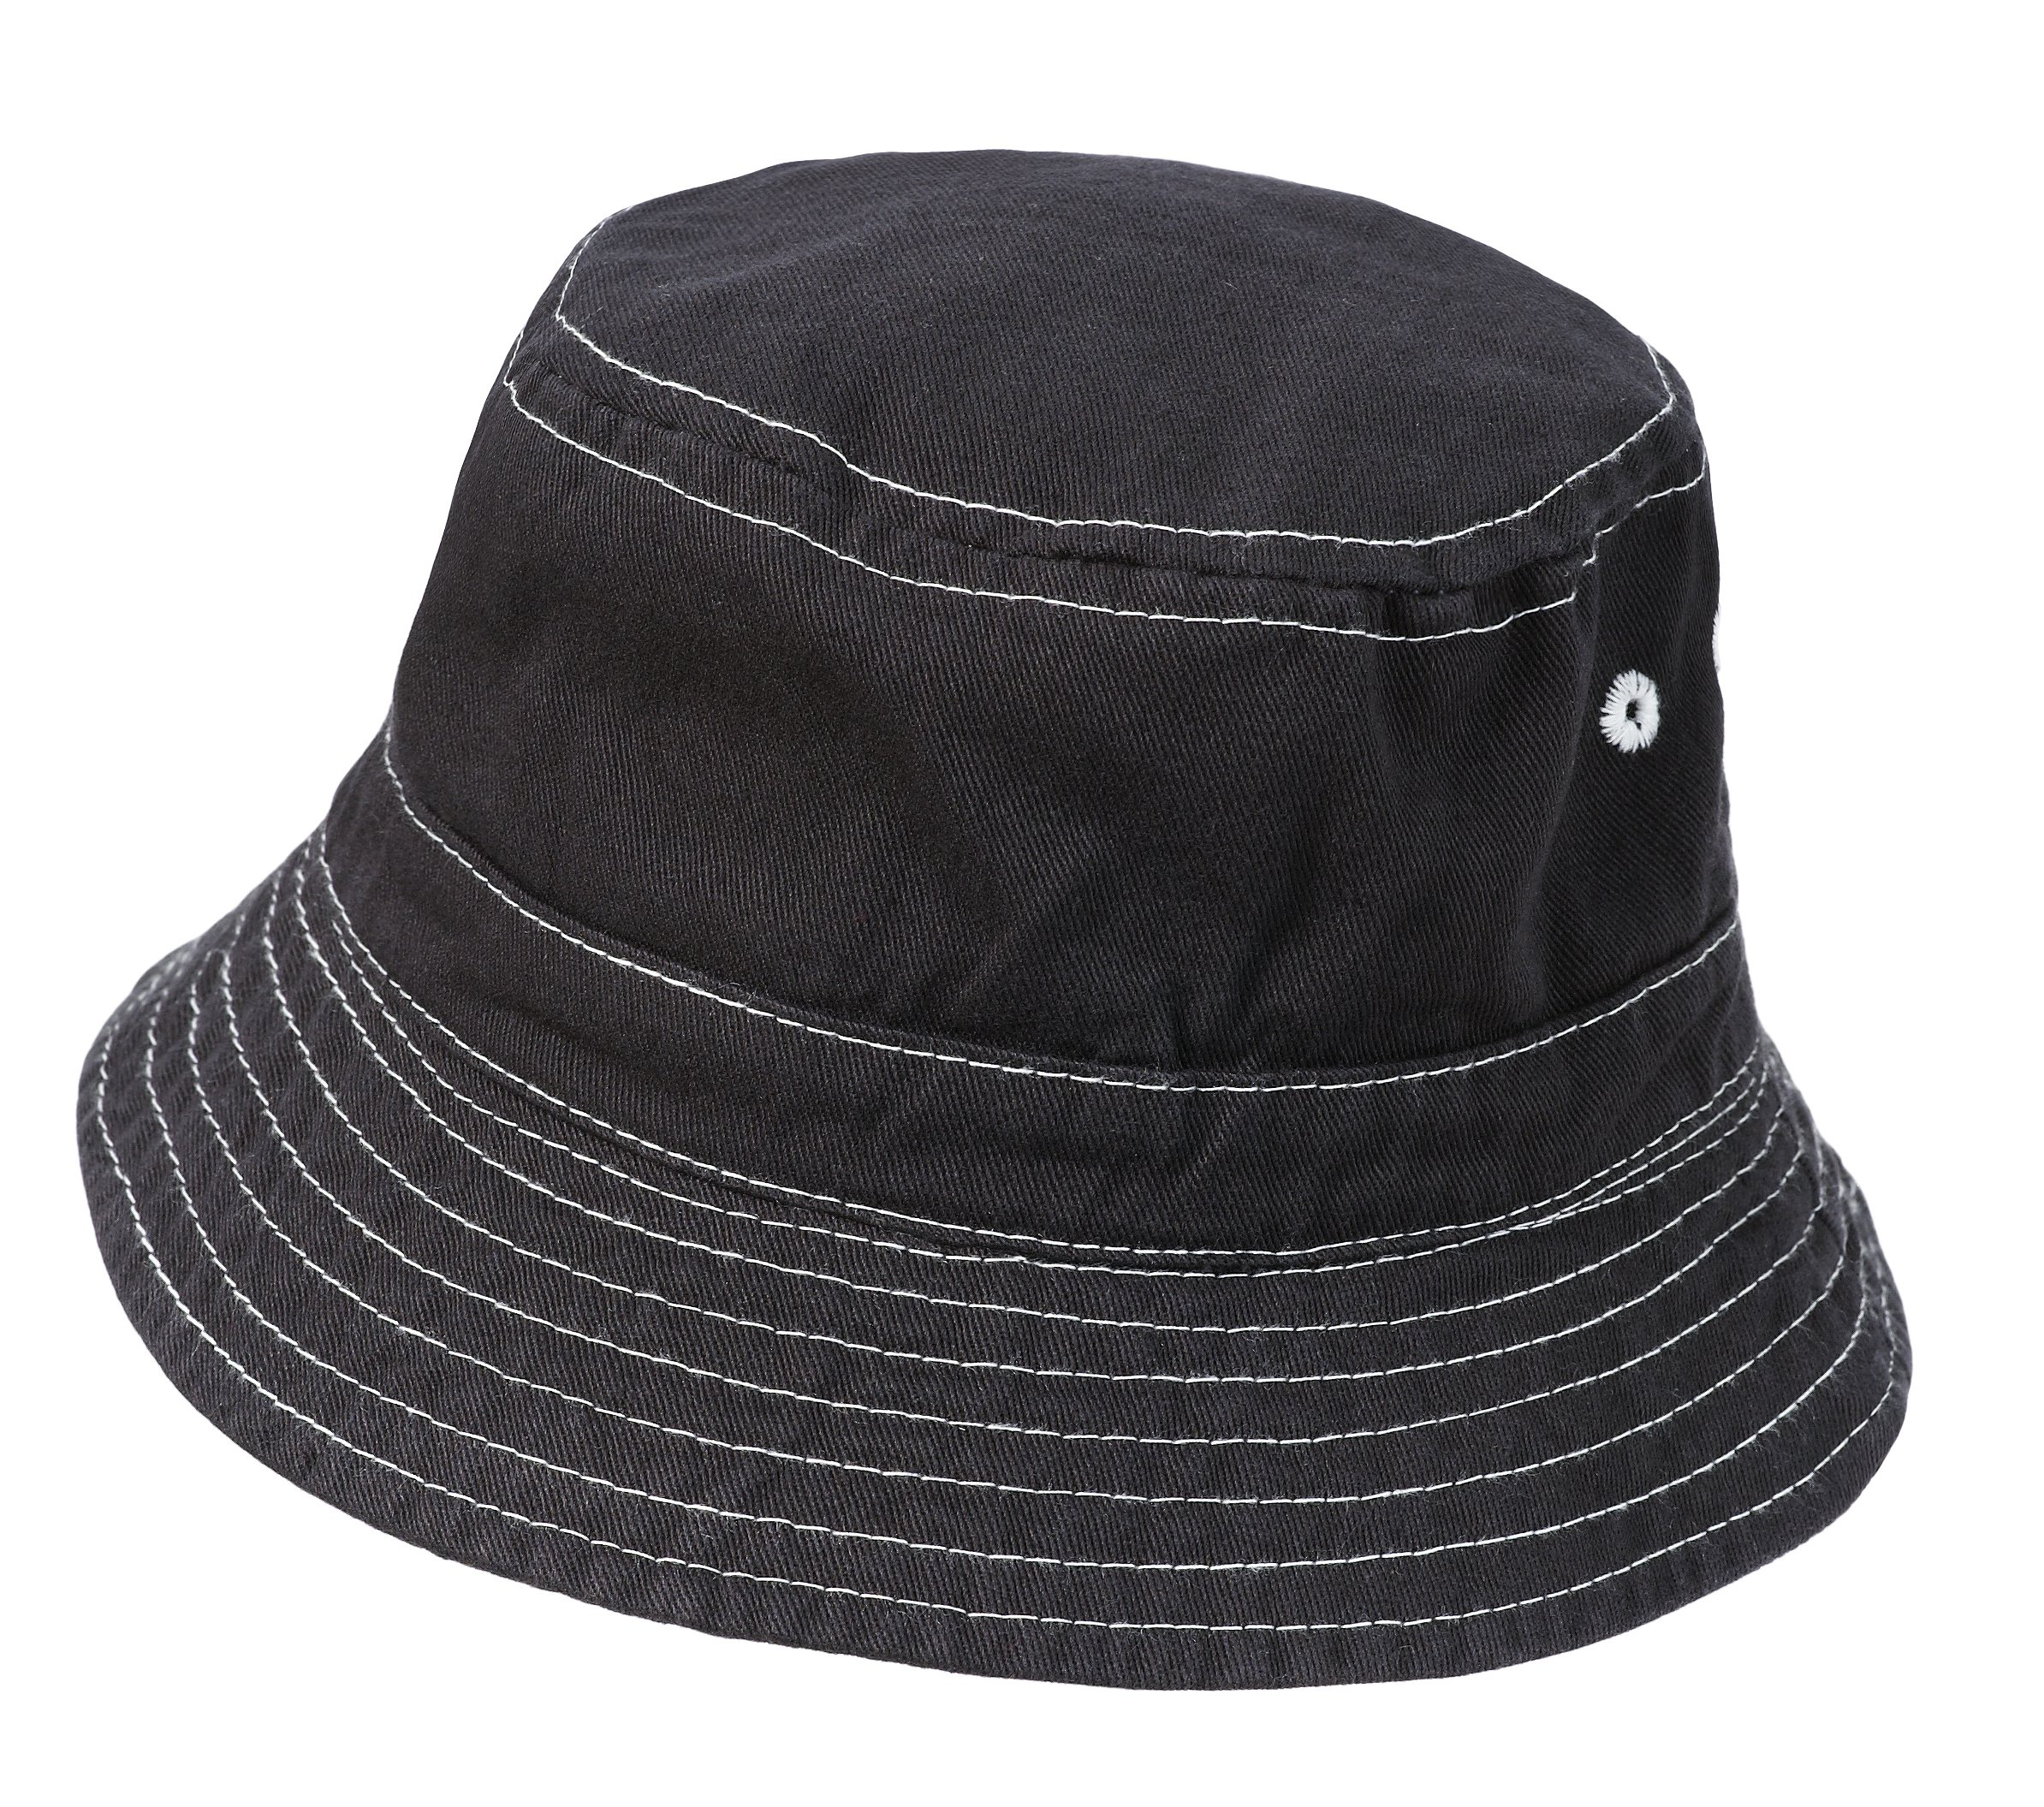 City Threads Little Boys' and Girls' Solid Wharf Hat Bucket Hat For Sun Protection SPF Beach Summer - Charcoal - L(2T-3T)